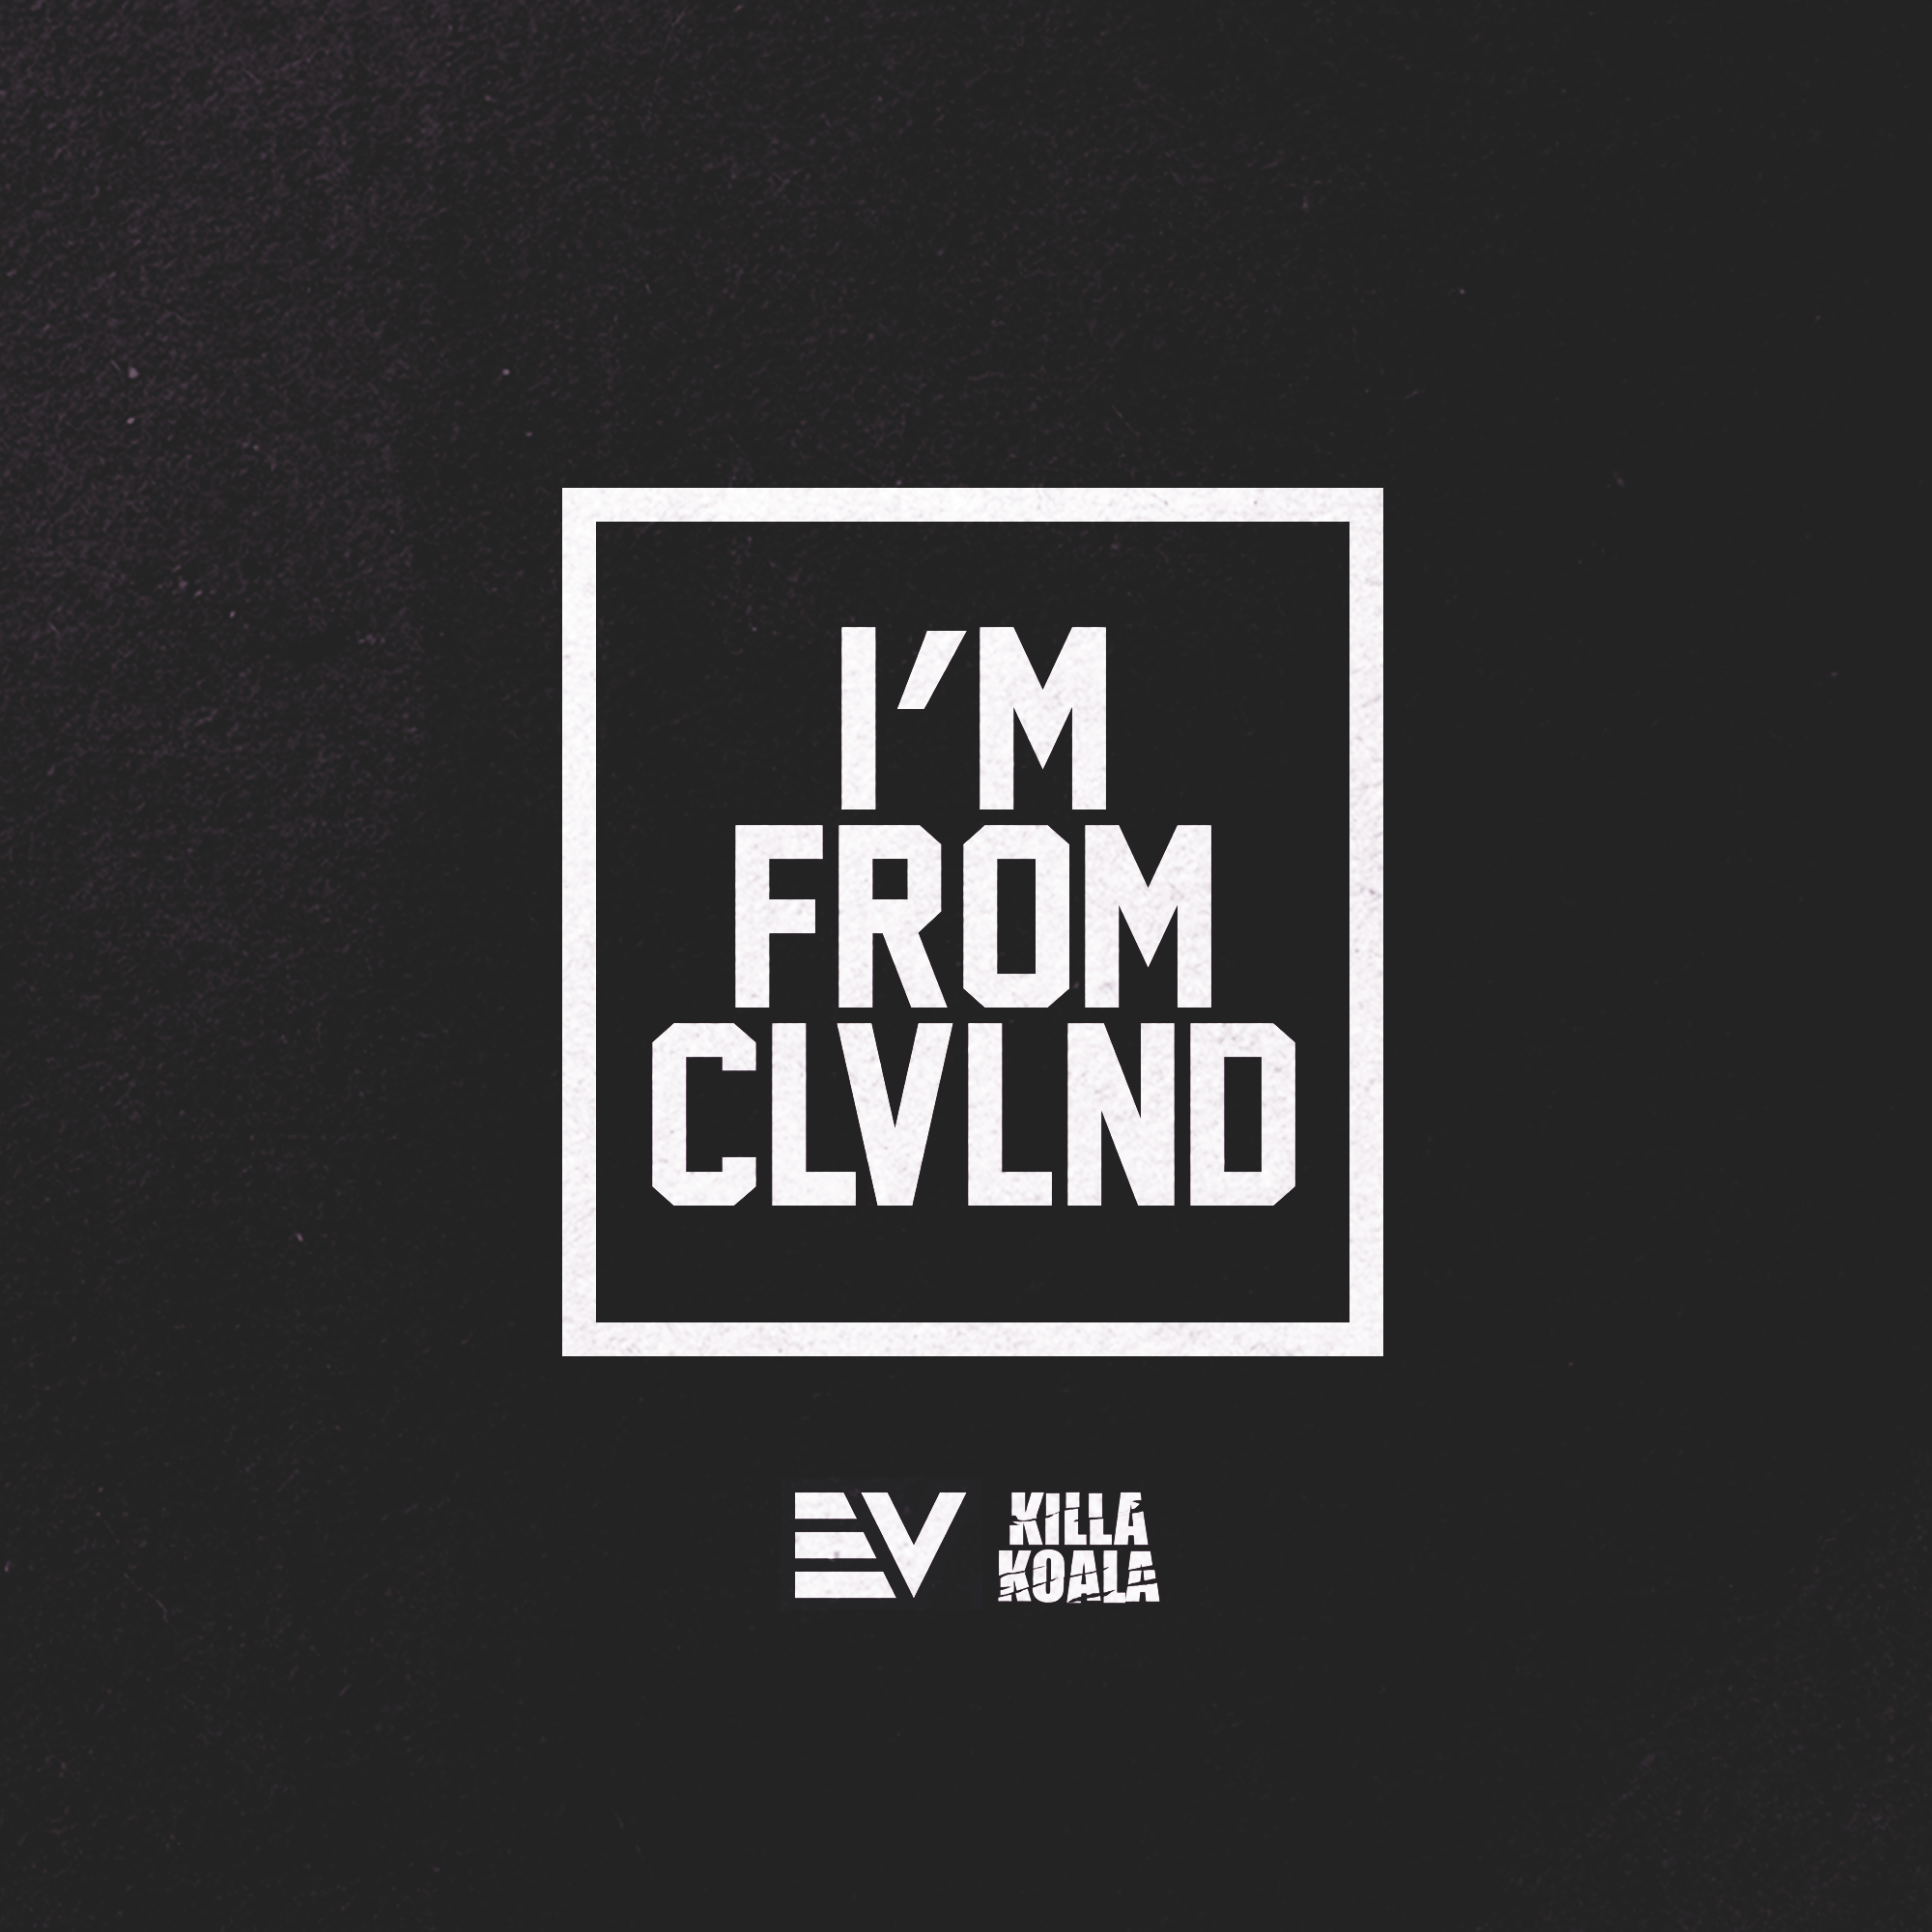 I'M FROM CLVLND - COVER